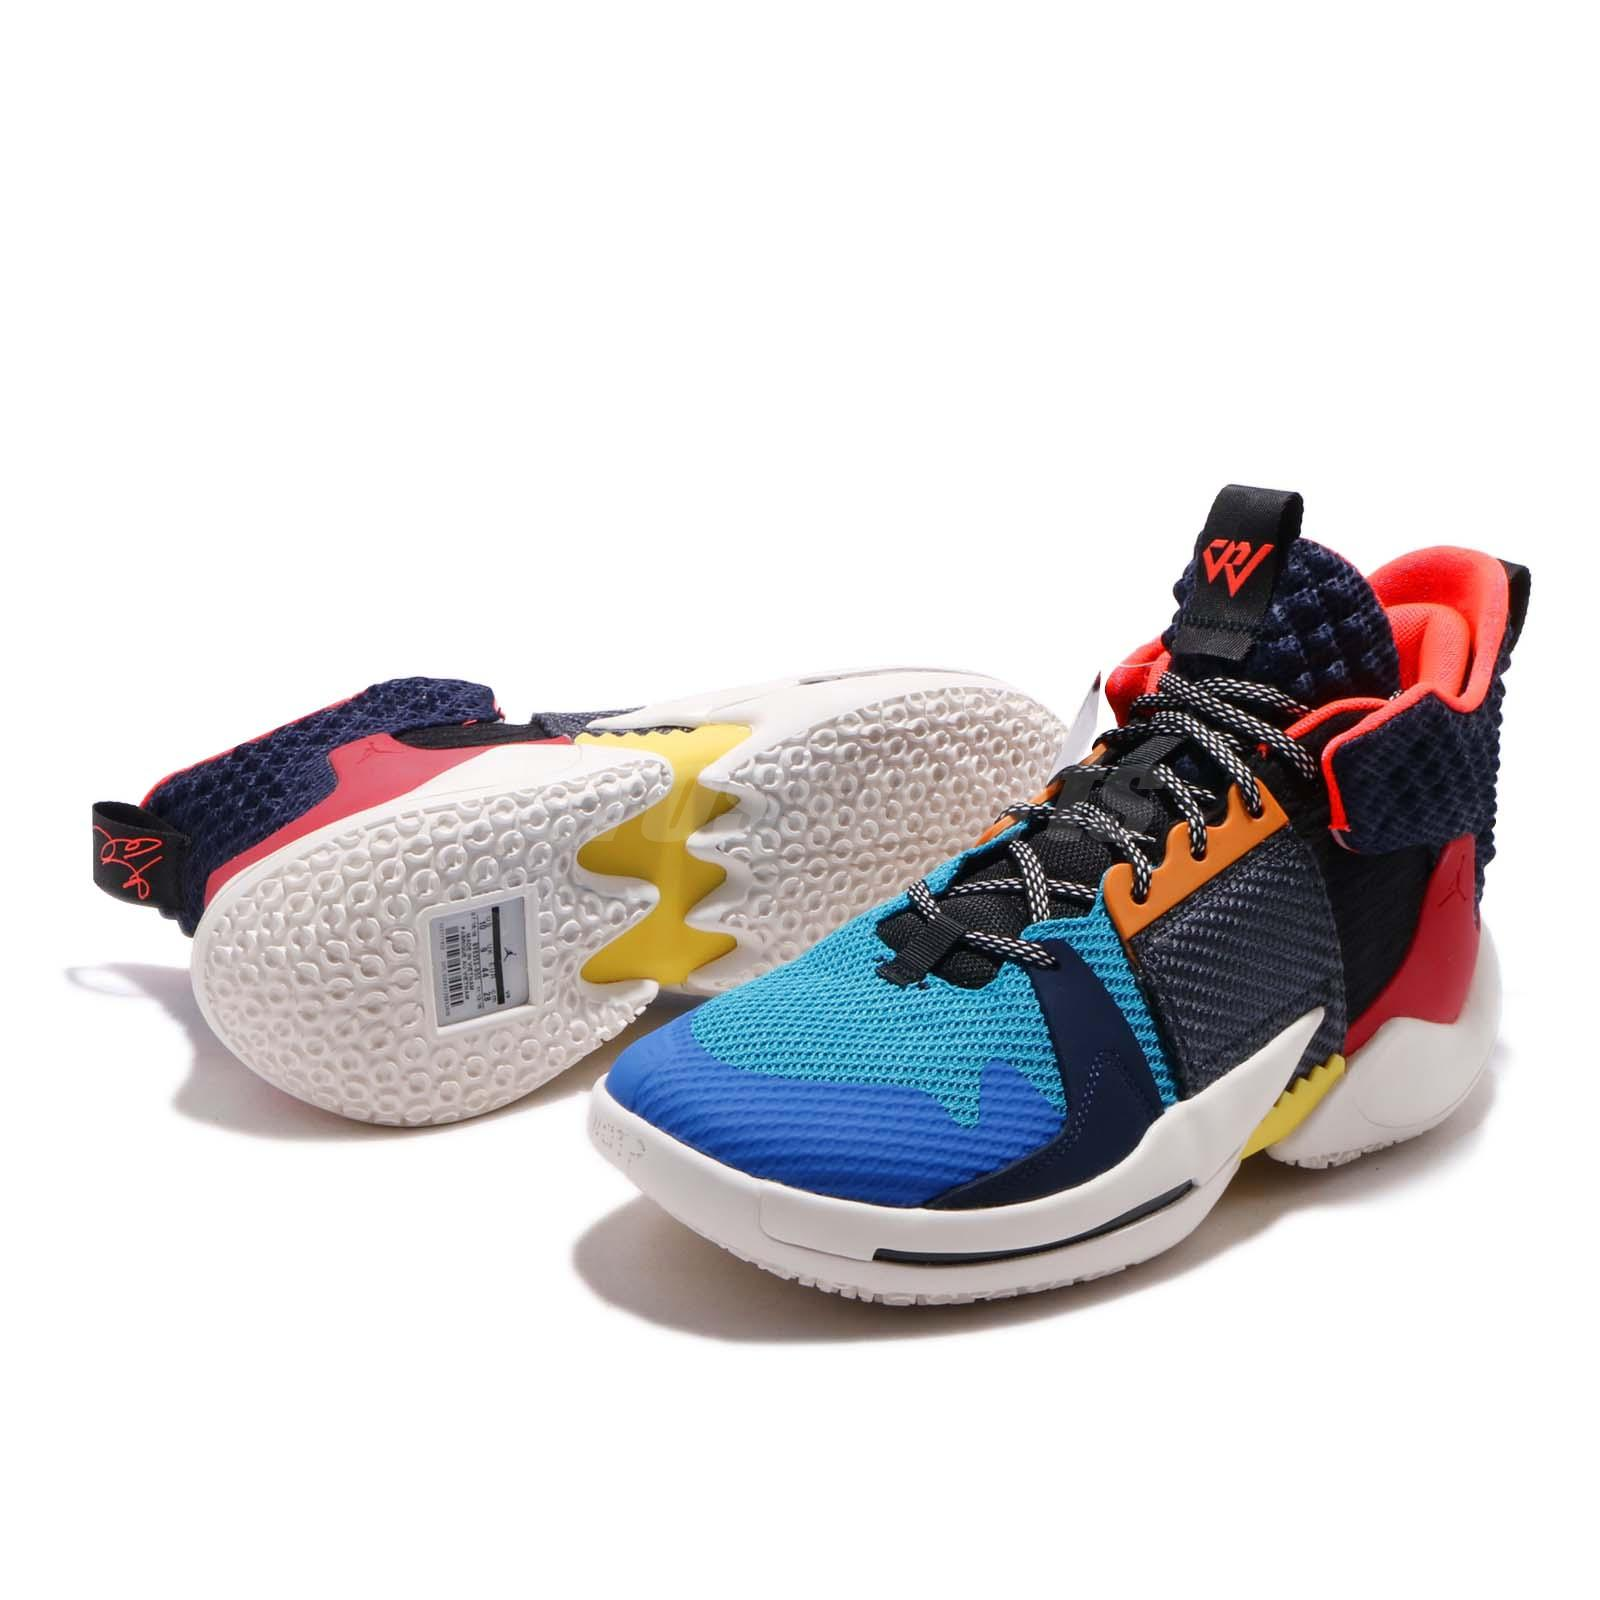 Nike Jordan Why Not ZER0.2 PF Multi-Color Russell ...